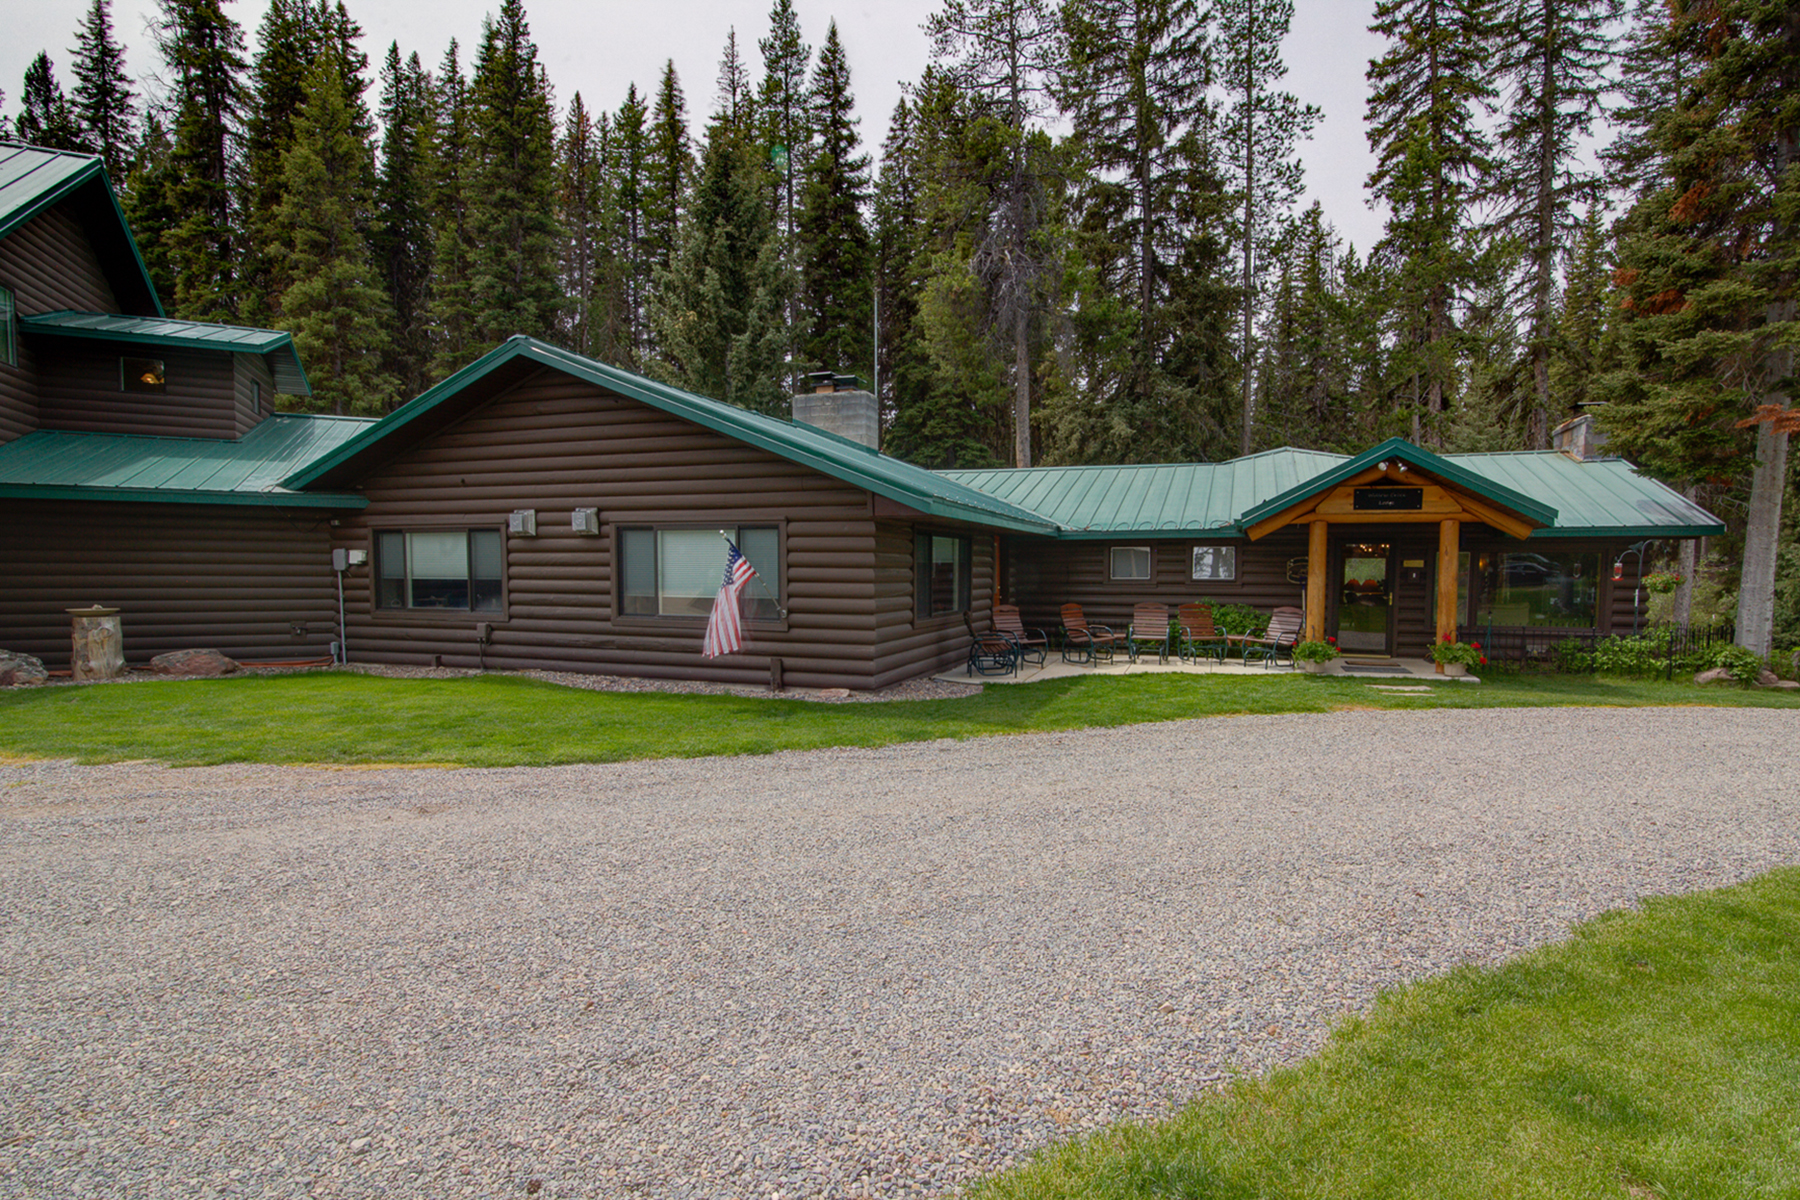 Additional photo for property listing at 5730 MT Hwy 279 5730  Mt Highway 279 Lincoln, Montana 59639 United States